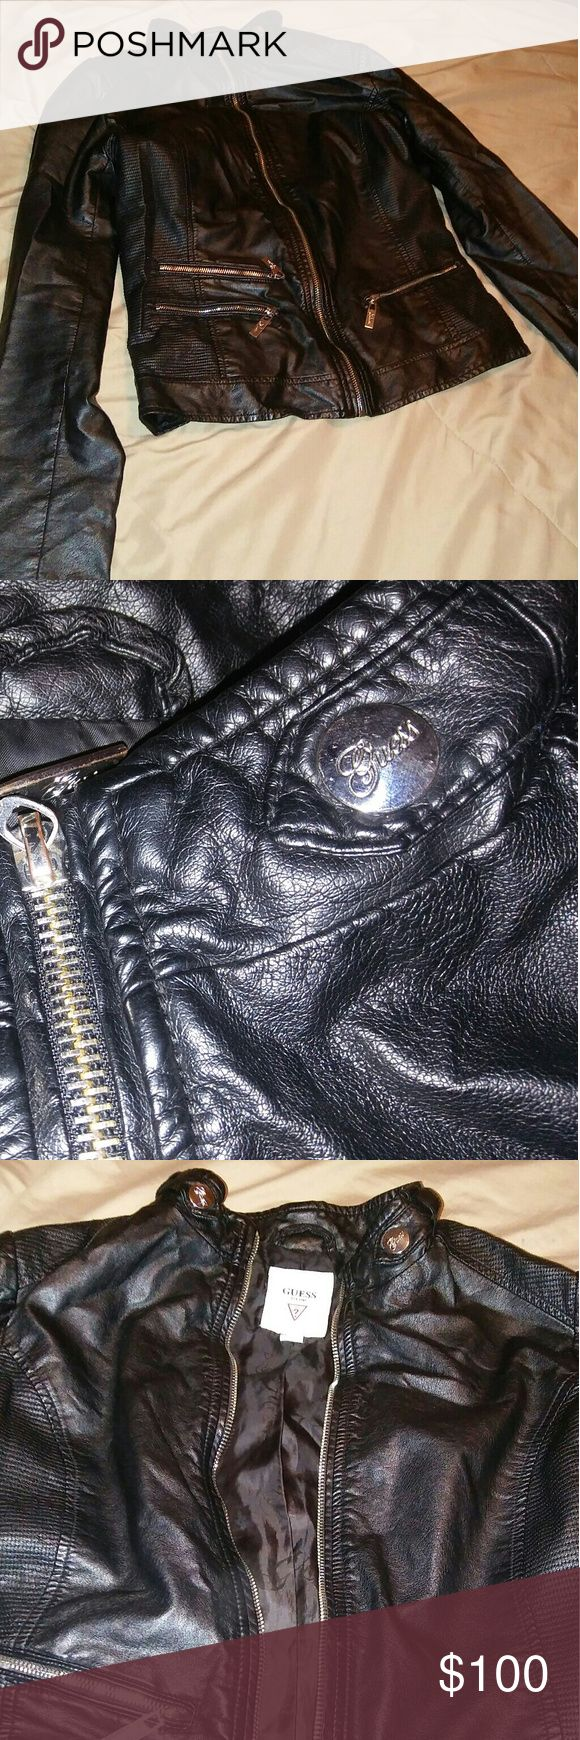 Guess Leather Jacket Guess Leather Jacket. Size Medium. Amazing Condition. Worn Once. Paid $150.00 For It At The Wrentham Outlets in MA.  Will Ship Same Day Unless Post Office Is Closed For A Holiday! Guess Jackets & Coats Jean Jackets